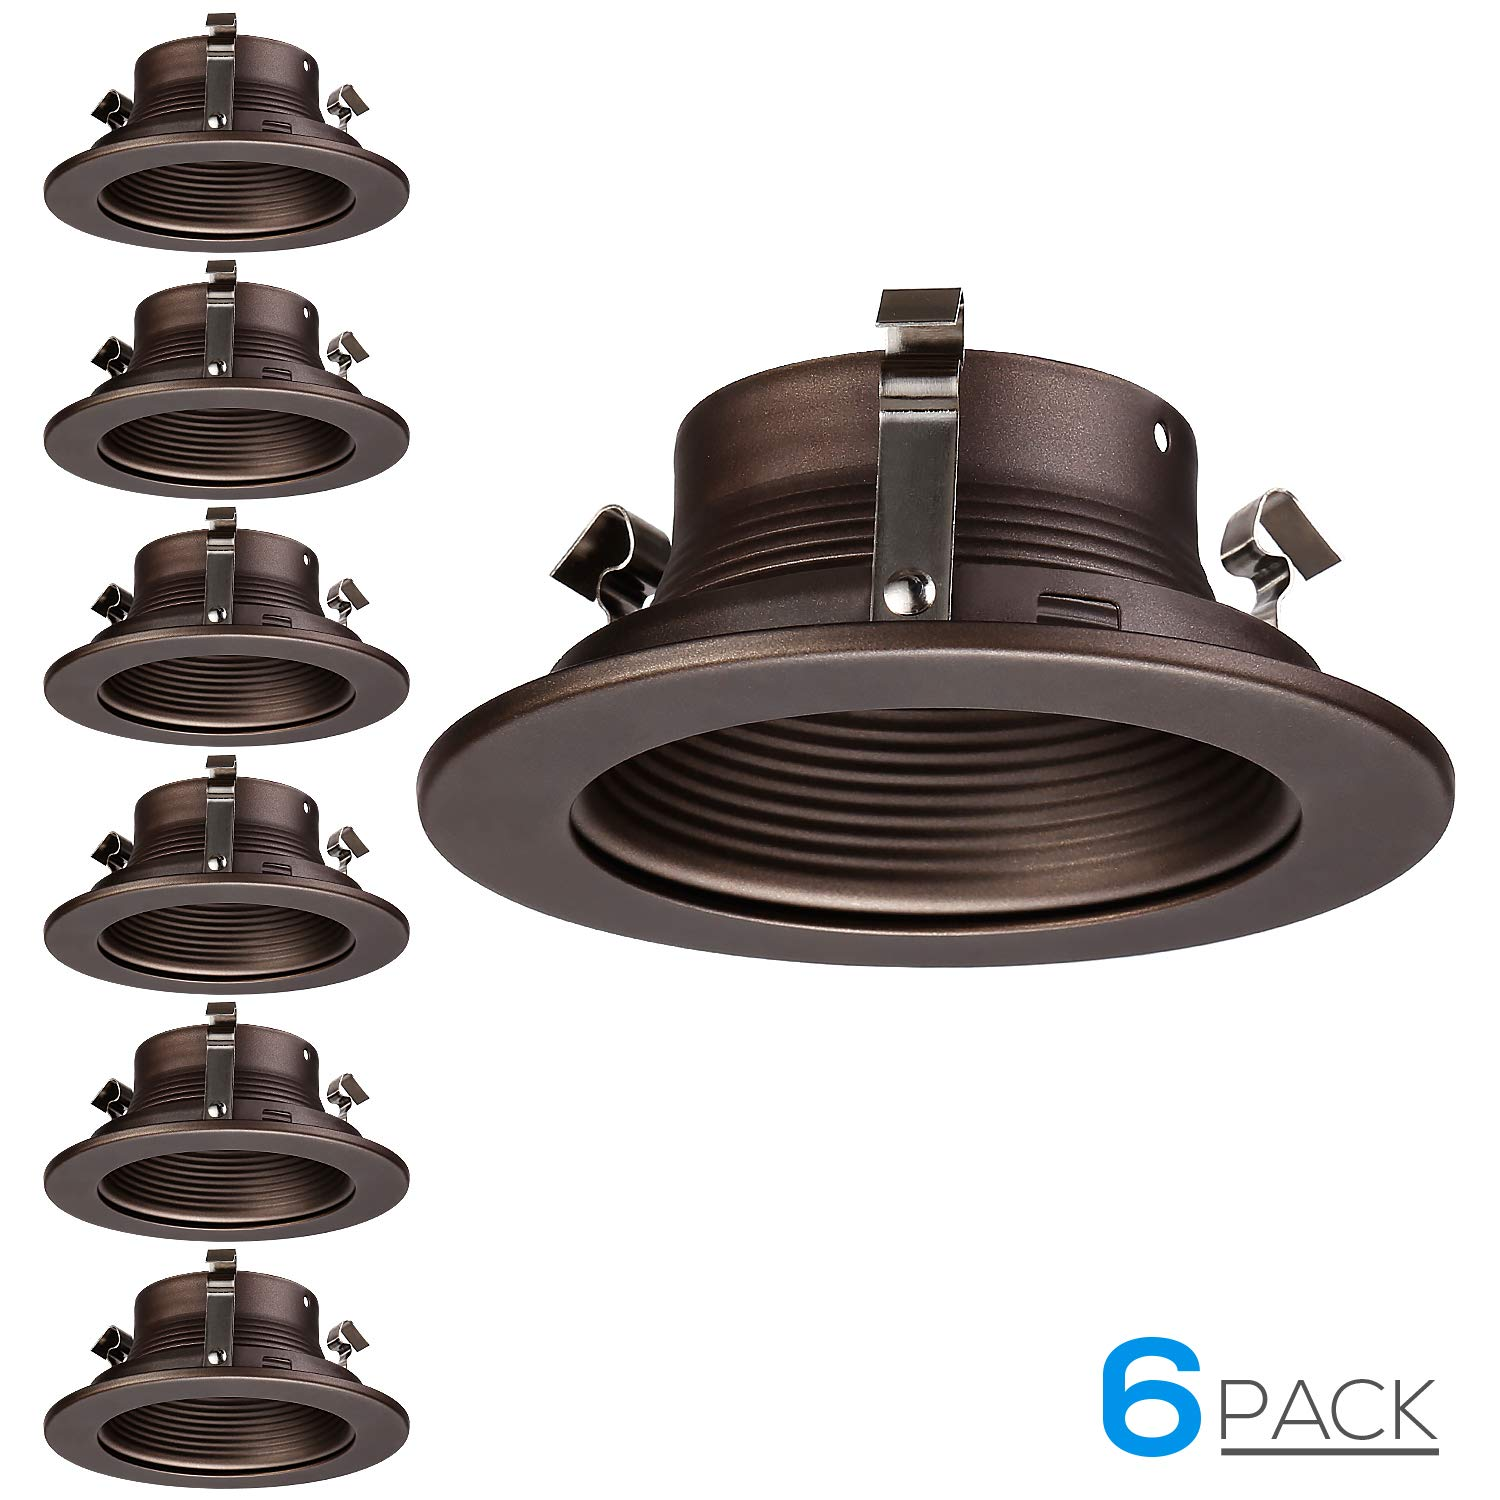 "TORCHSTAR 4 Inches Recessed Can Light Trim, Oil Rubbed Bronze Metal Step Baffle Trim, for PAR20, R20 Light Bulbs, for 4"" Recessed Cans, Halo/Juno Remodel Recessed Housing, Pack of 6"